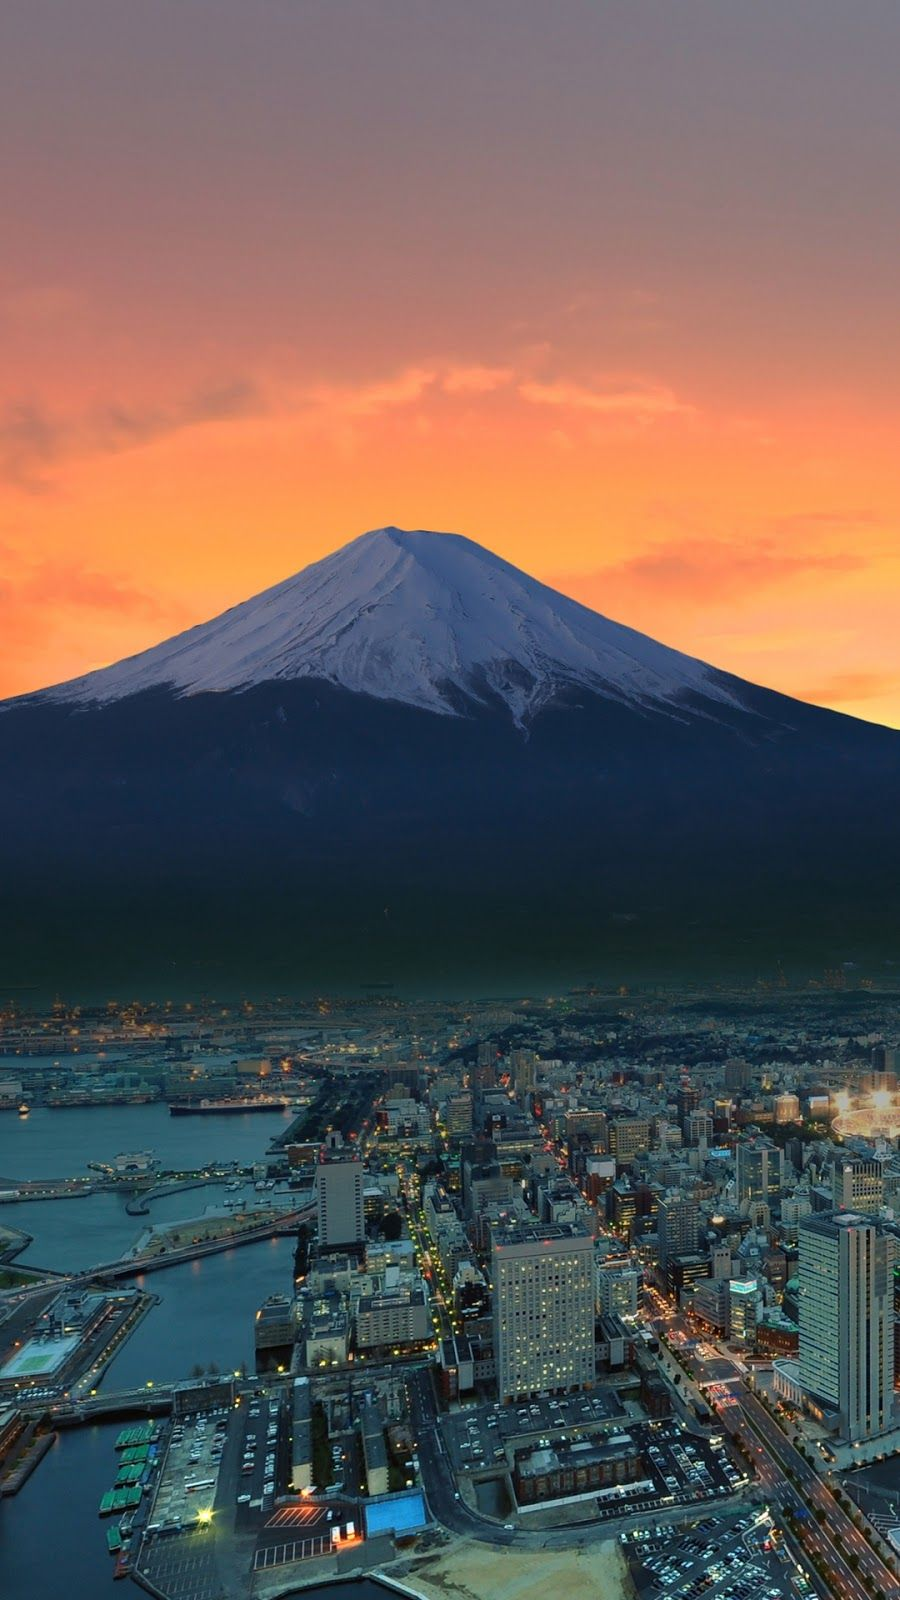 Sunset On Mount Fuji Tokyo 1080 X 1920 Iphone Wallpaper Japan